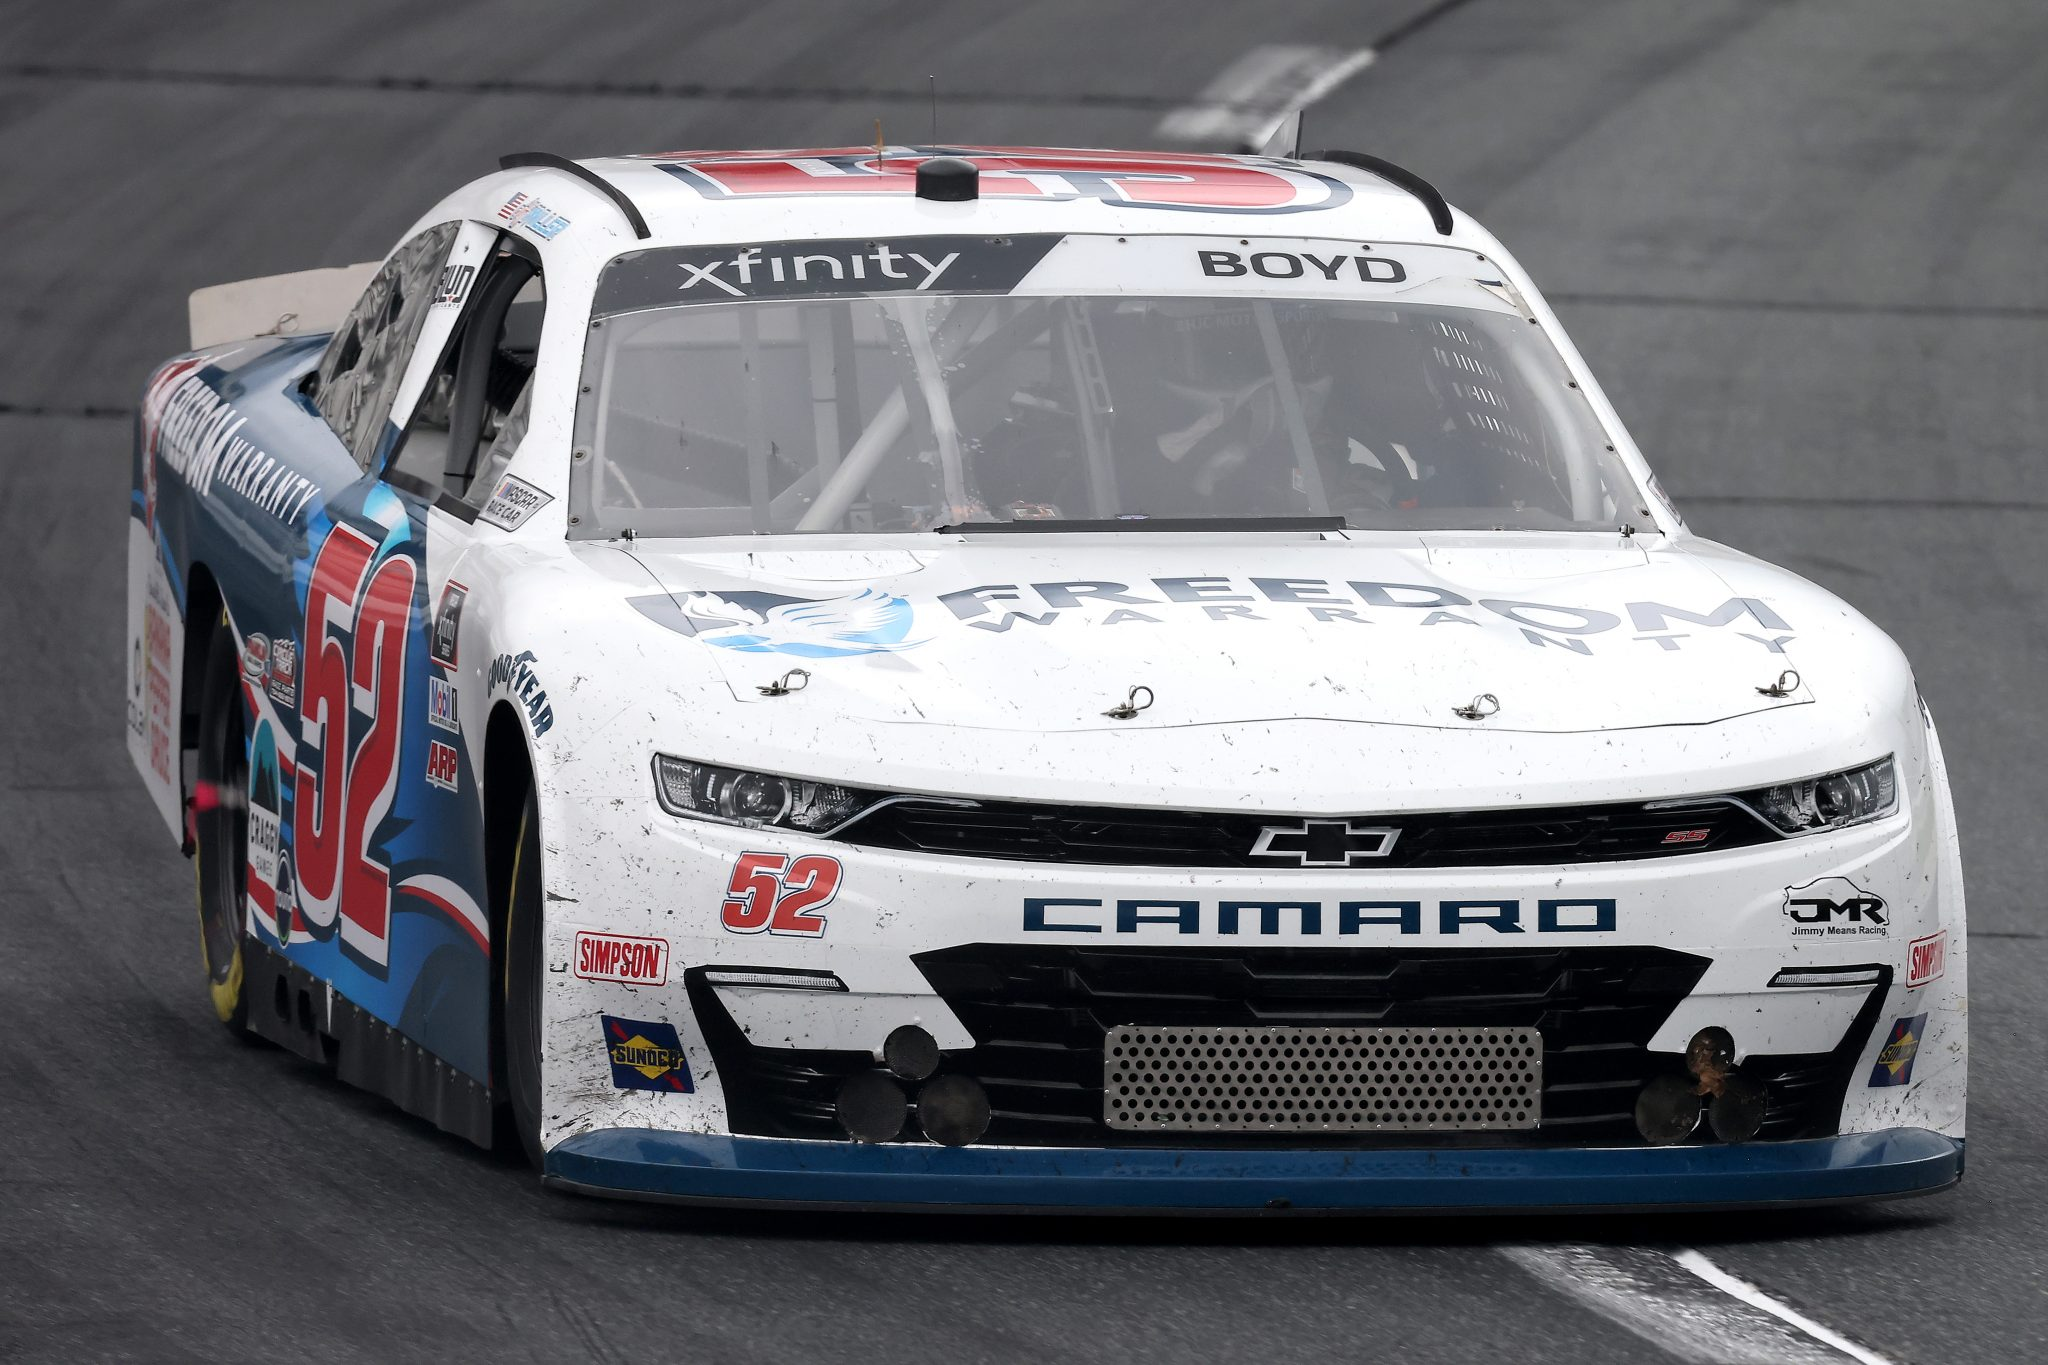 LOUDON, NEW HAMPSHIRE - JULY 17: Spencer Boyd, driver of the #52 Freedom Warranty Chevrolet, drives during the NASCAR Xfinity Series Ambetter Get Vaccinated 200 at New Hampshire Motor Speedway on July 17, 2021 in Loudon, New Hampshire. (Photo by James Gilbert/Getty Images)   Getty Images